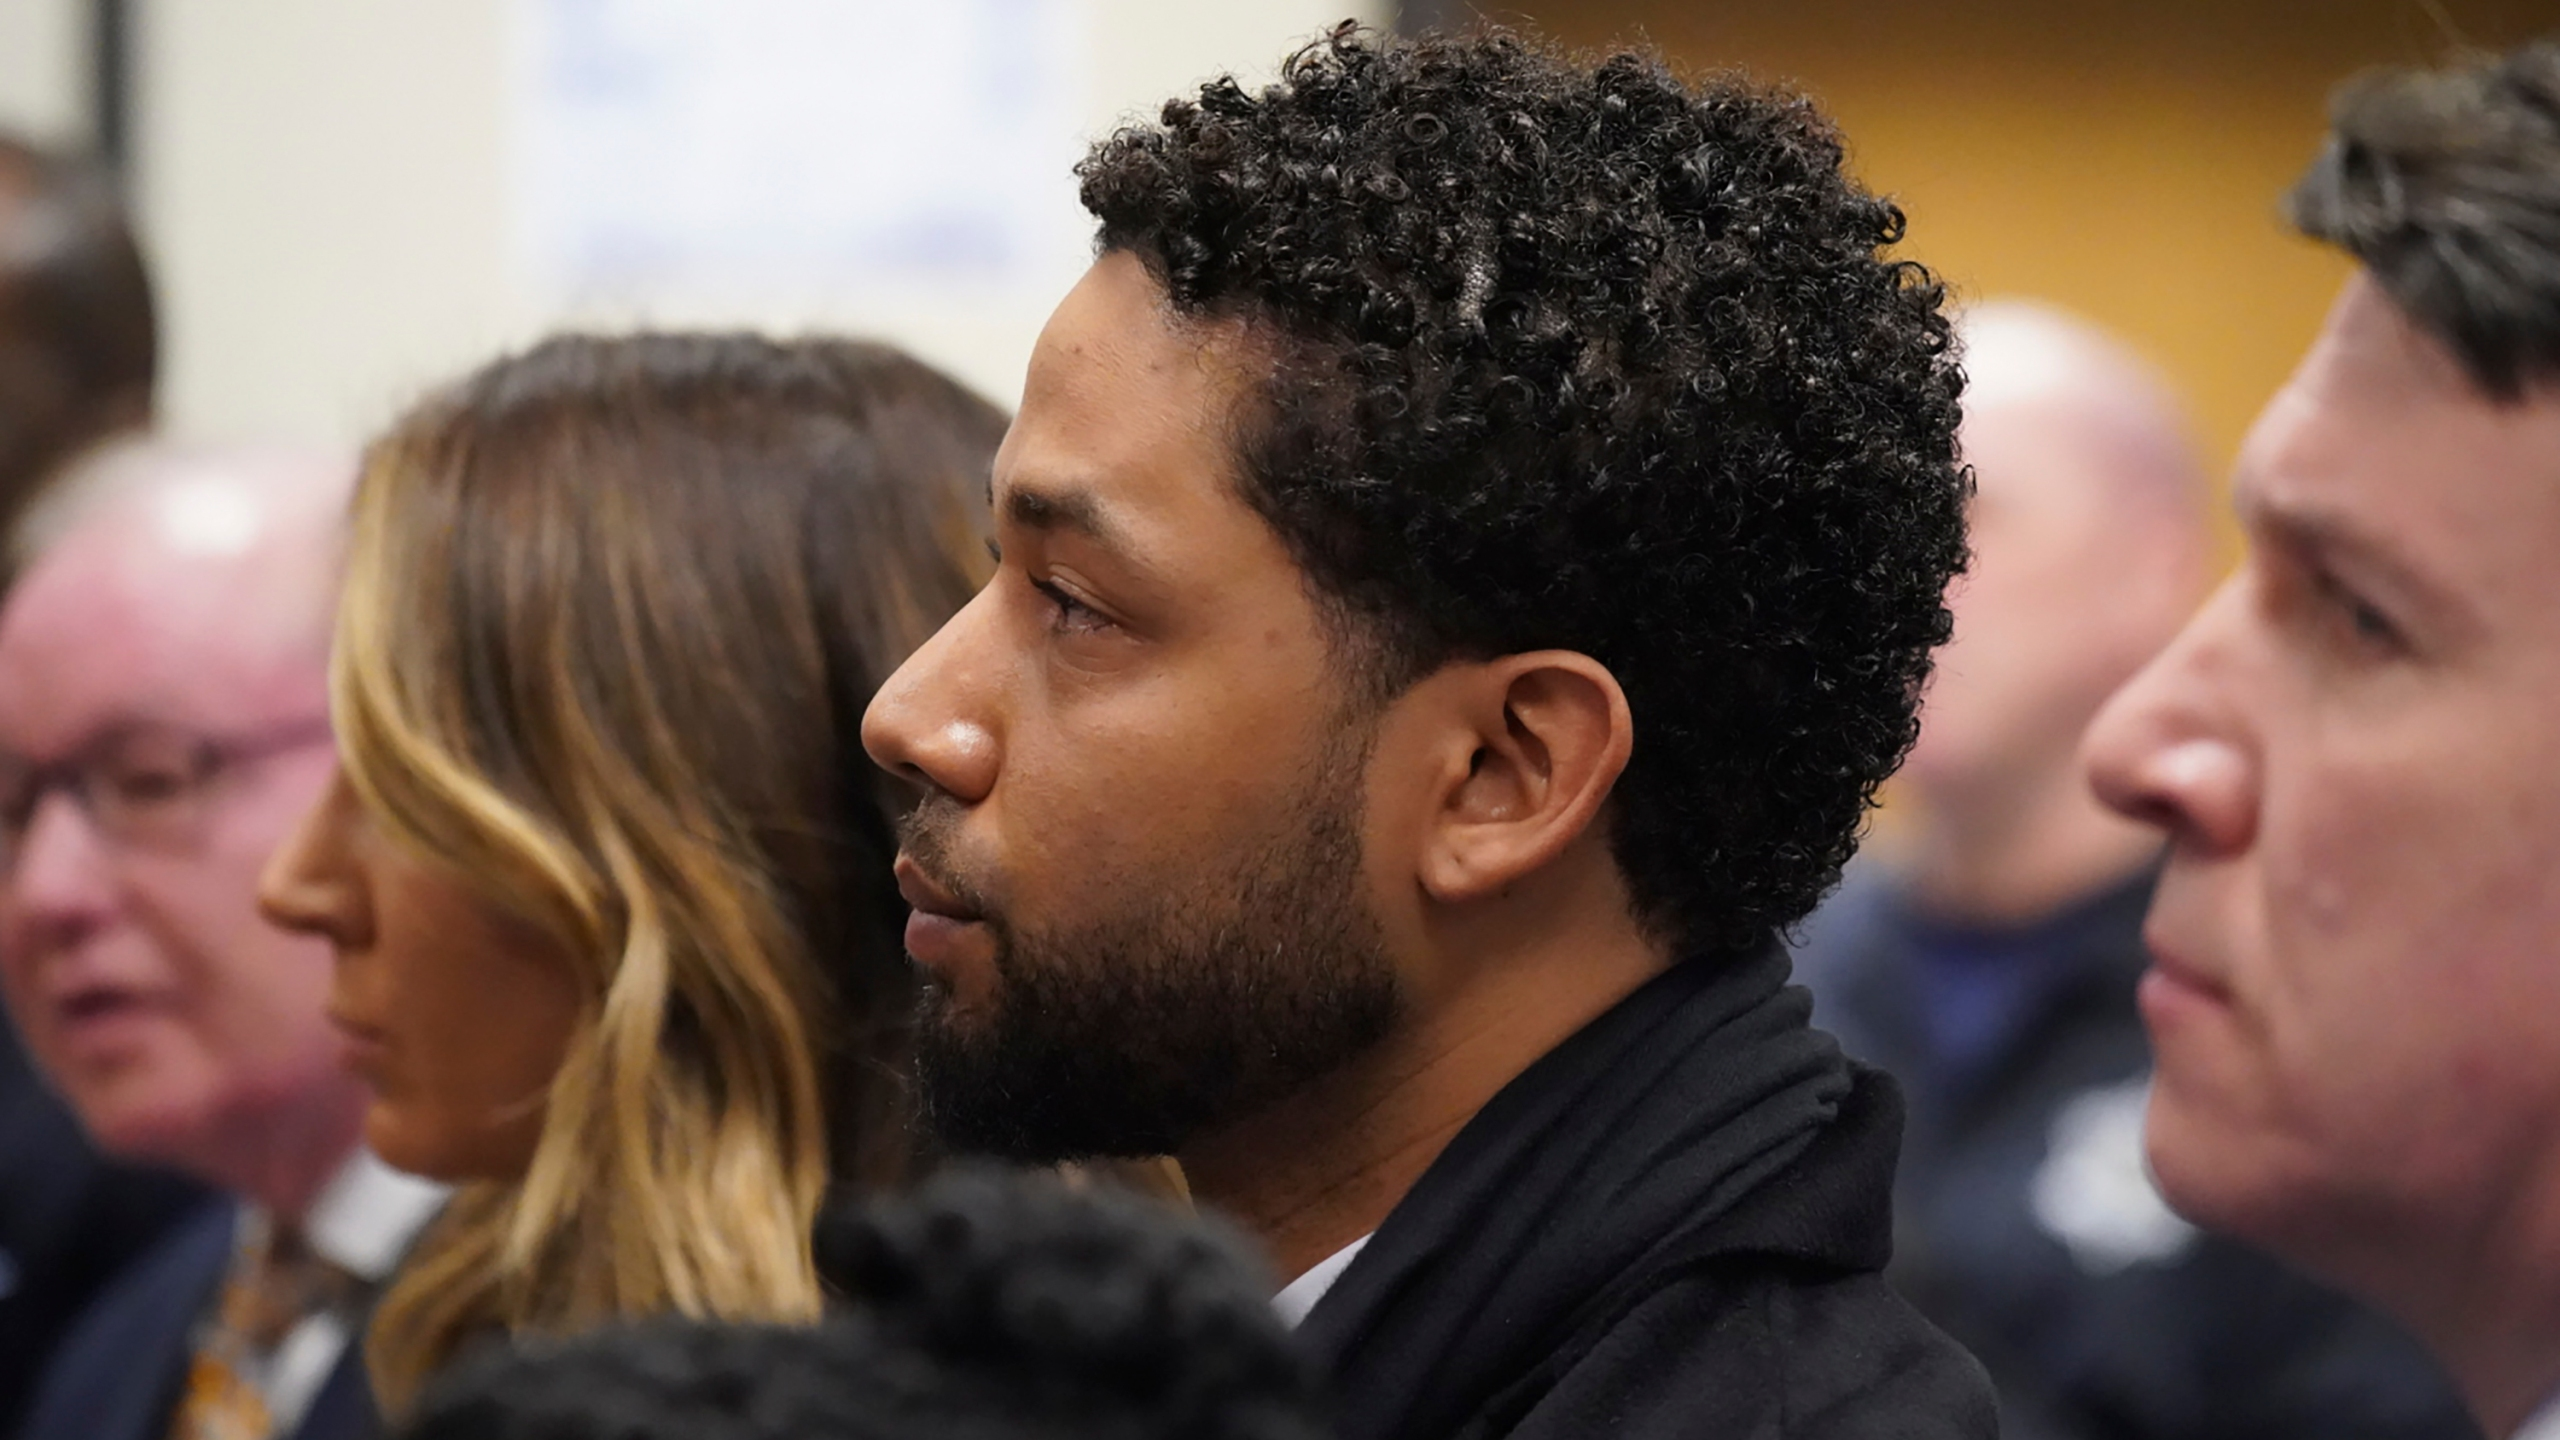 Actor Jussie Smollett, center, appears in a courtroom at the Leighton Criminal Court Building in Chicago on Feb. 24, 2020, where he plead not guilty to restored charges that accuse him of staging a racist, homophobic attack against himself and falsely reporting it to police. He faces six counts of felony disorderly conduct. (Brian Cassella/Chicago Tribune via AP, Pool)